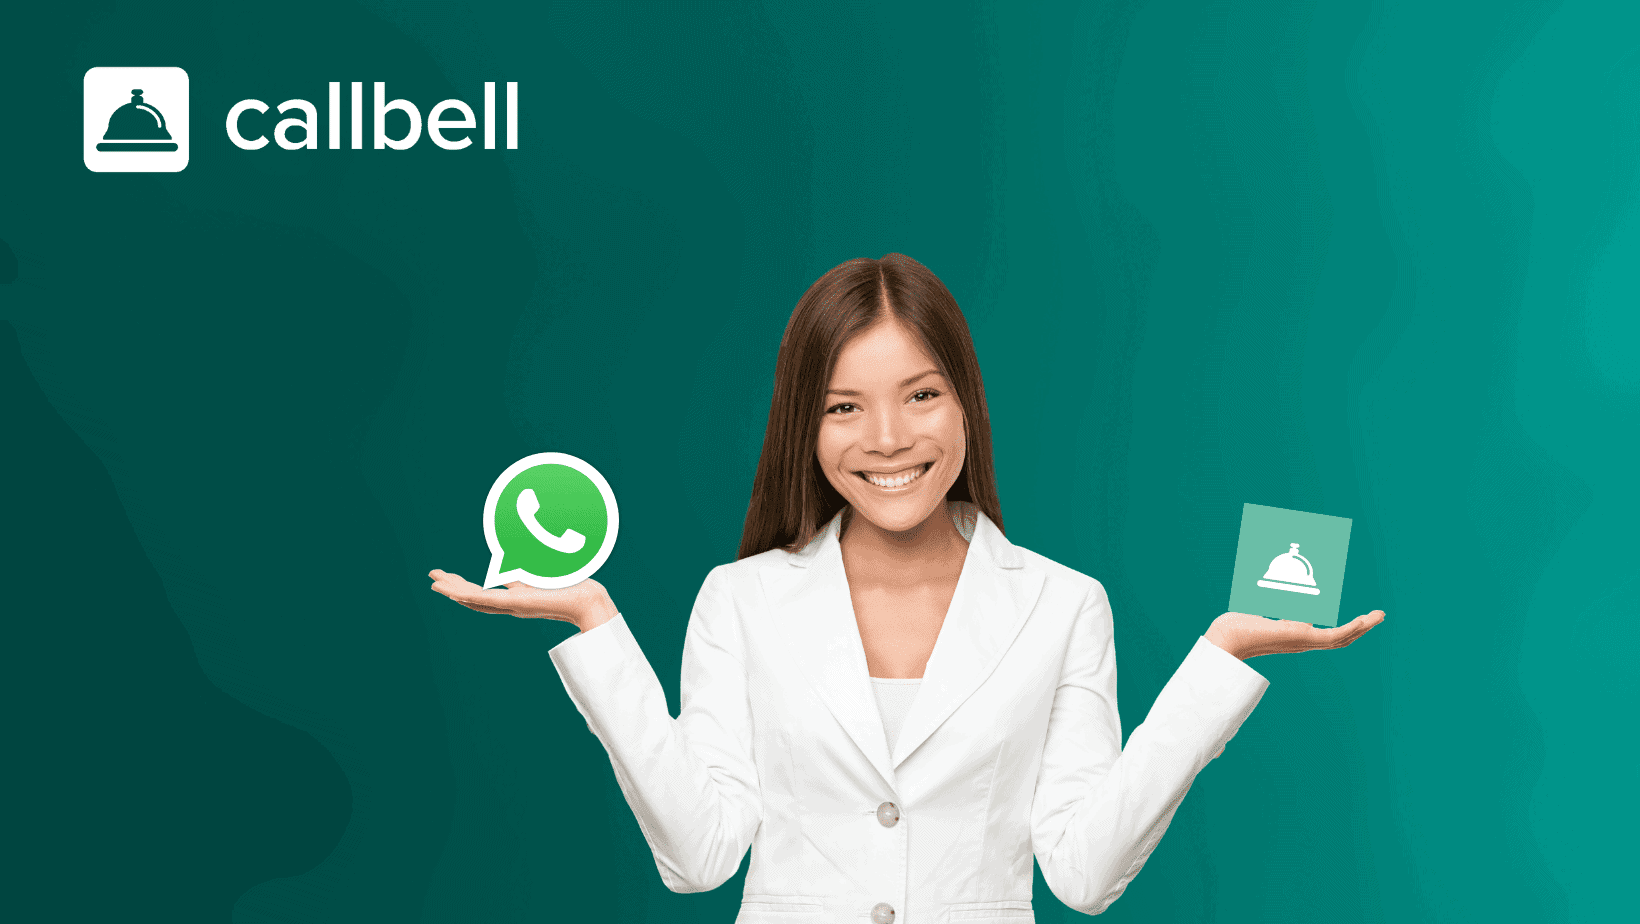 WhatsApp for Human Resources